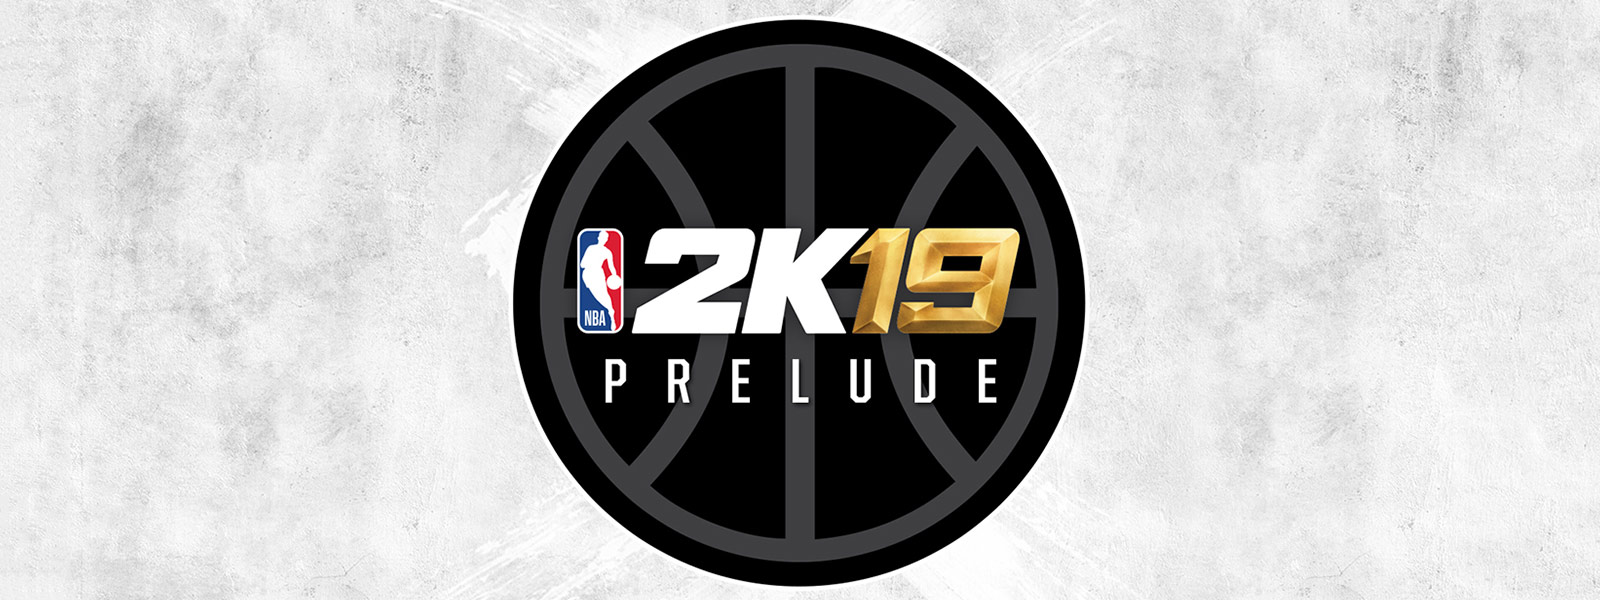 2K19 Prelude-text i formen av en basketboll